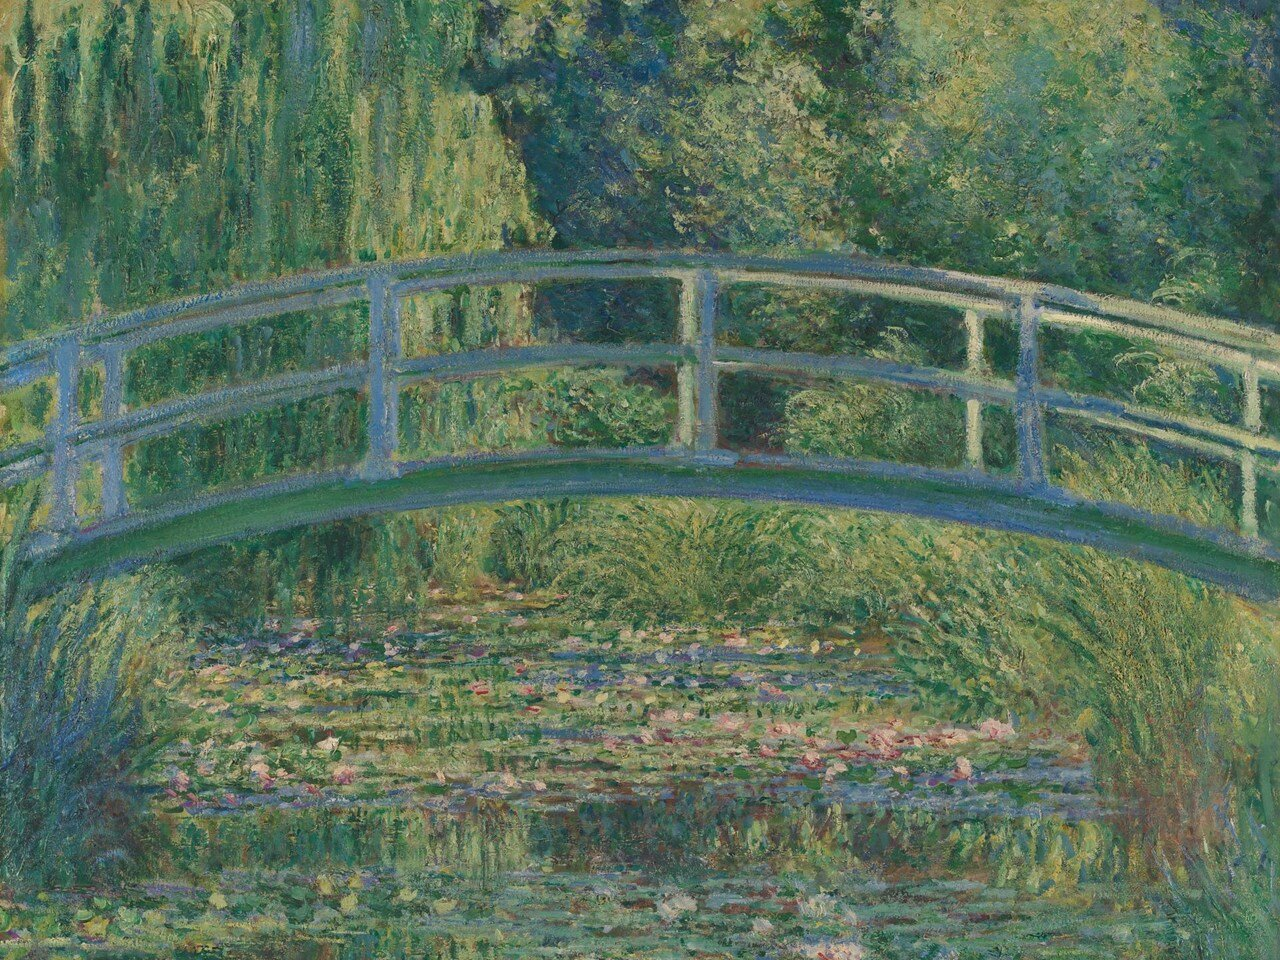 Claude Monet,  The Water-Lily Pond  (1899), The National Gallery